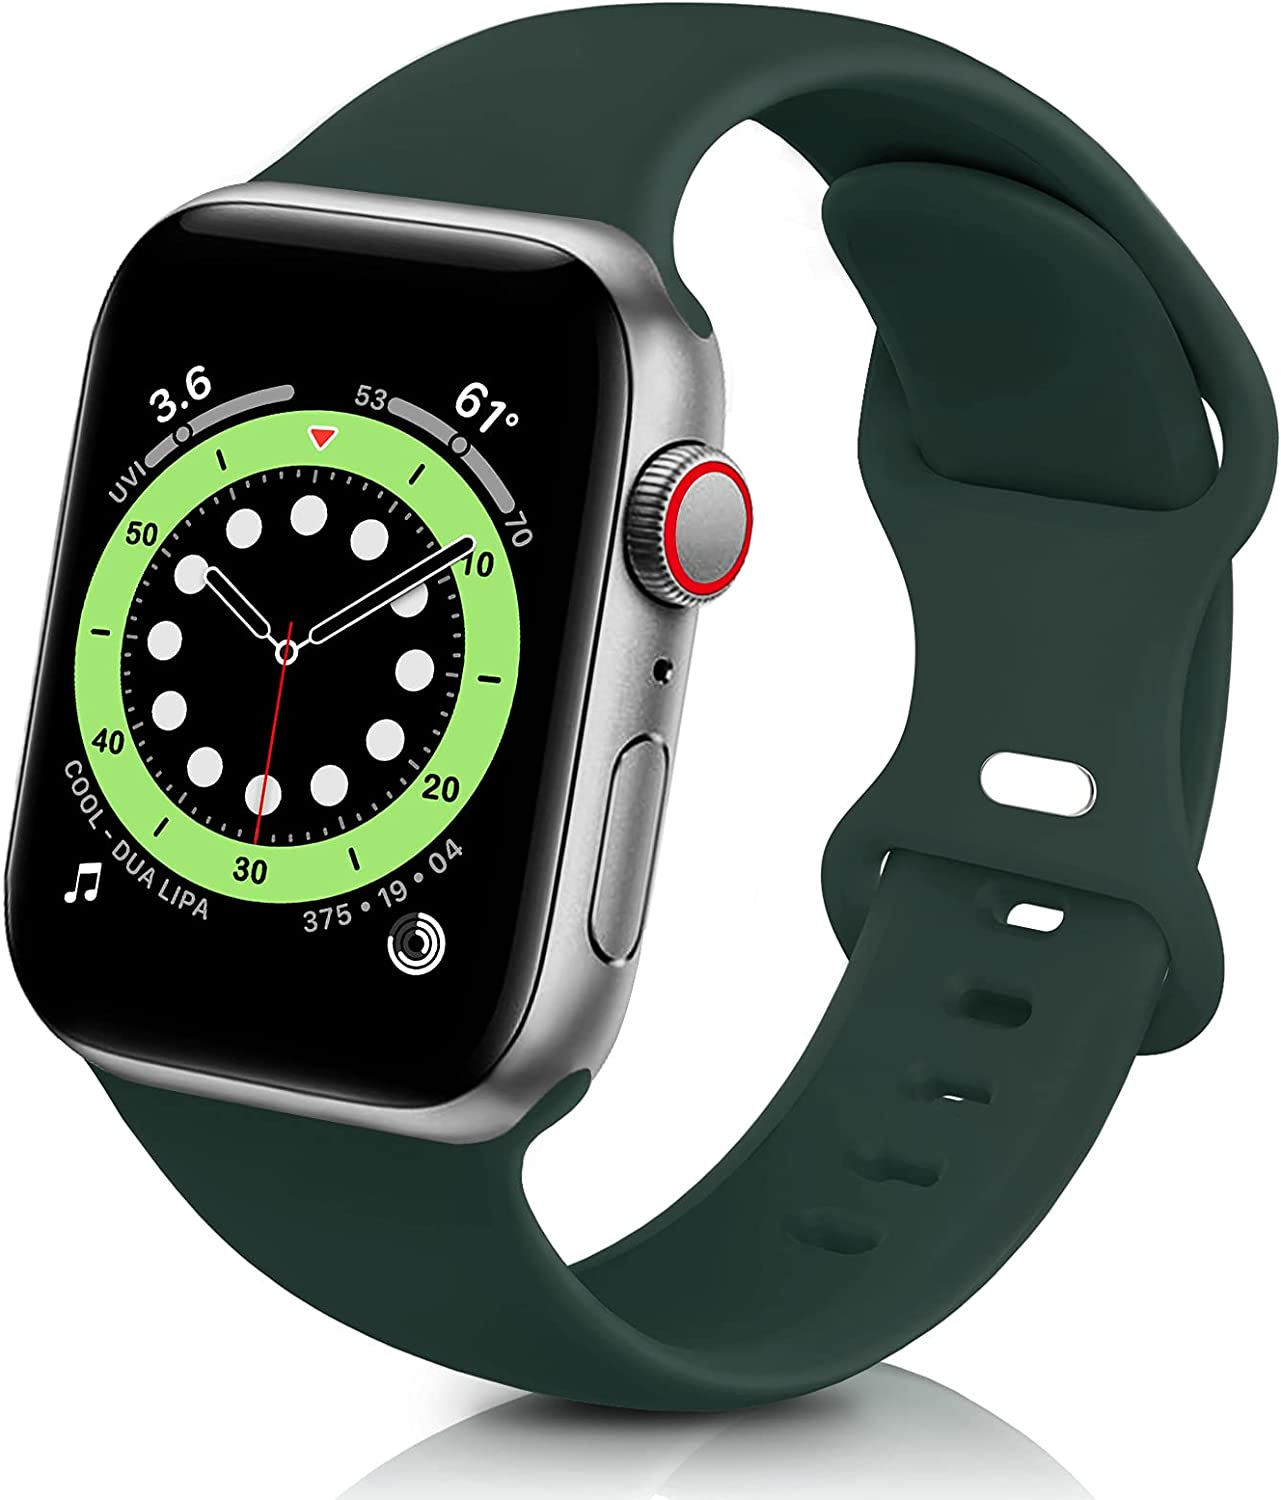 ZALAVER Bands Compatible with Apple Watch Band 38mm 40mm 42mm 44mm, Soft Silicone Sport Replacement Band Compatible with iWatch Series 6 5 4 3 2 1 Women Men Olive 38mm/40mm S/M